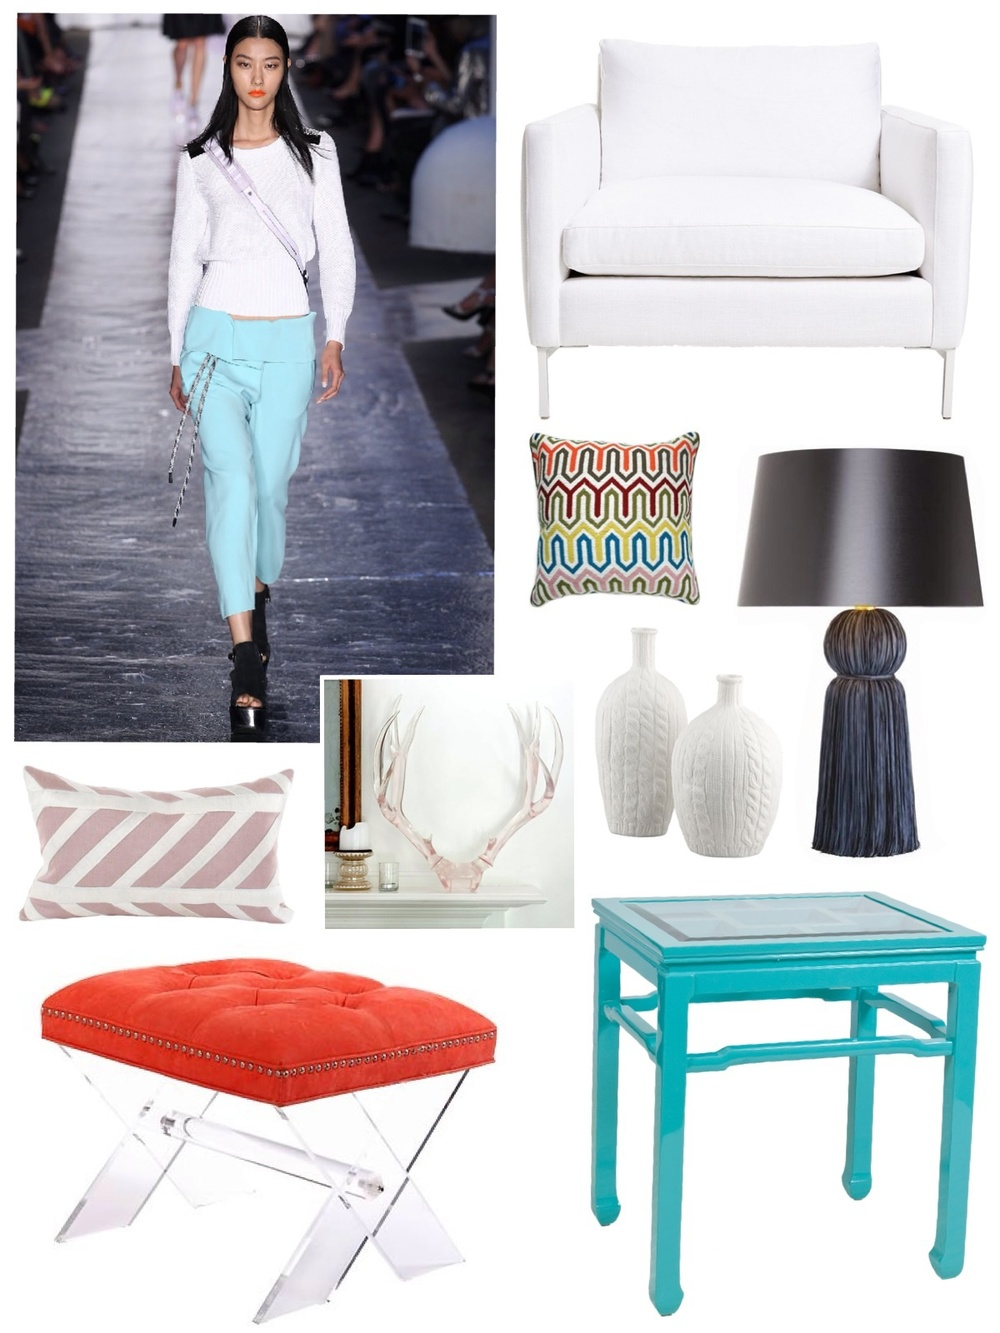 "Runway image: Rag and Bone / Available through Savvy:  pillows, ottoman with lucite base, lucite antlers, tassel lamp, ""knit sweater"" vases, turquoise side table / Chair: ABC Home Kimberly Kowalski, Allied ASID"